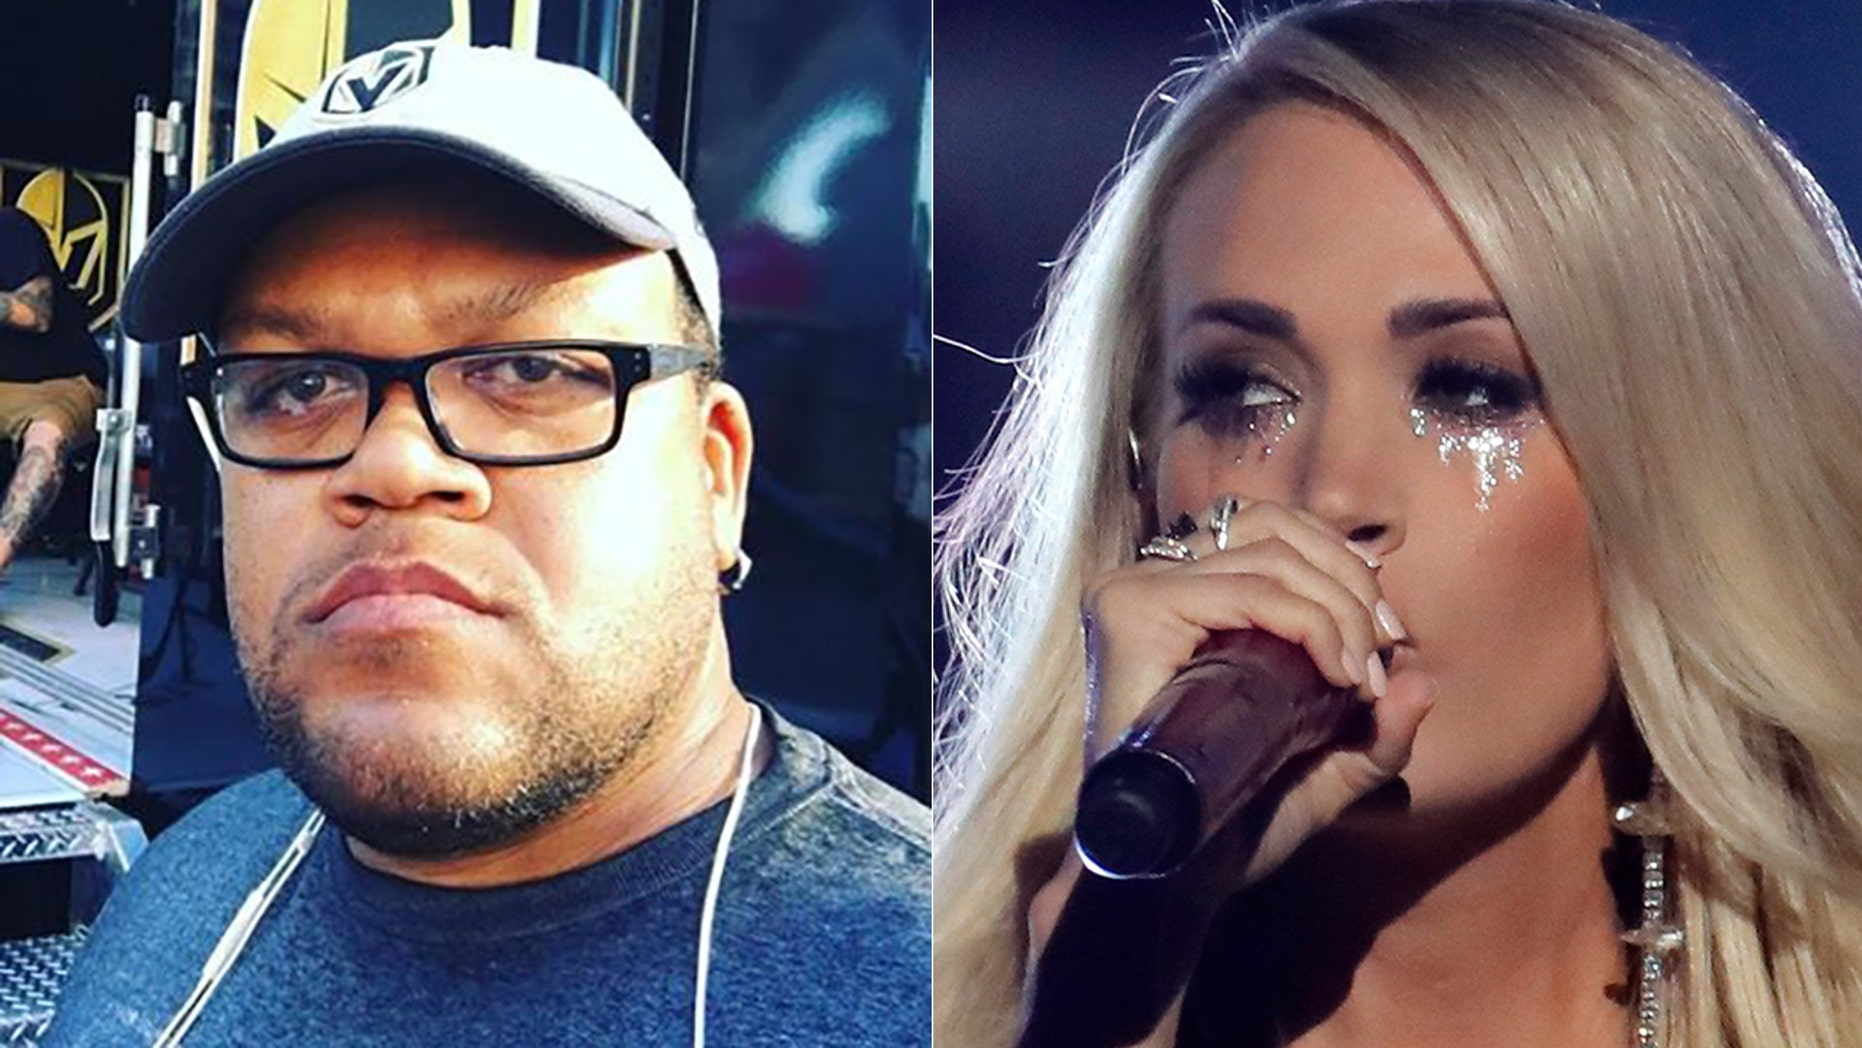 """Carnell """"Golden Pipes"""" Johnson chided Carrie Underwood in an Instagram post."""